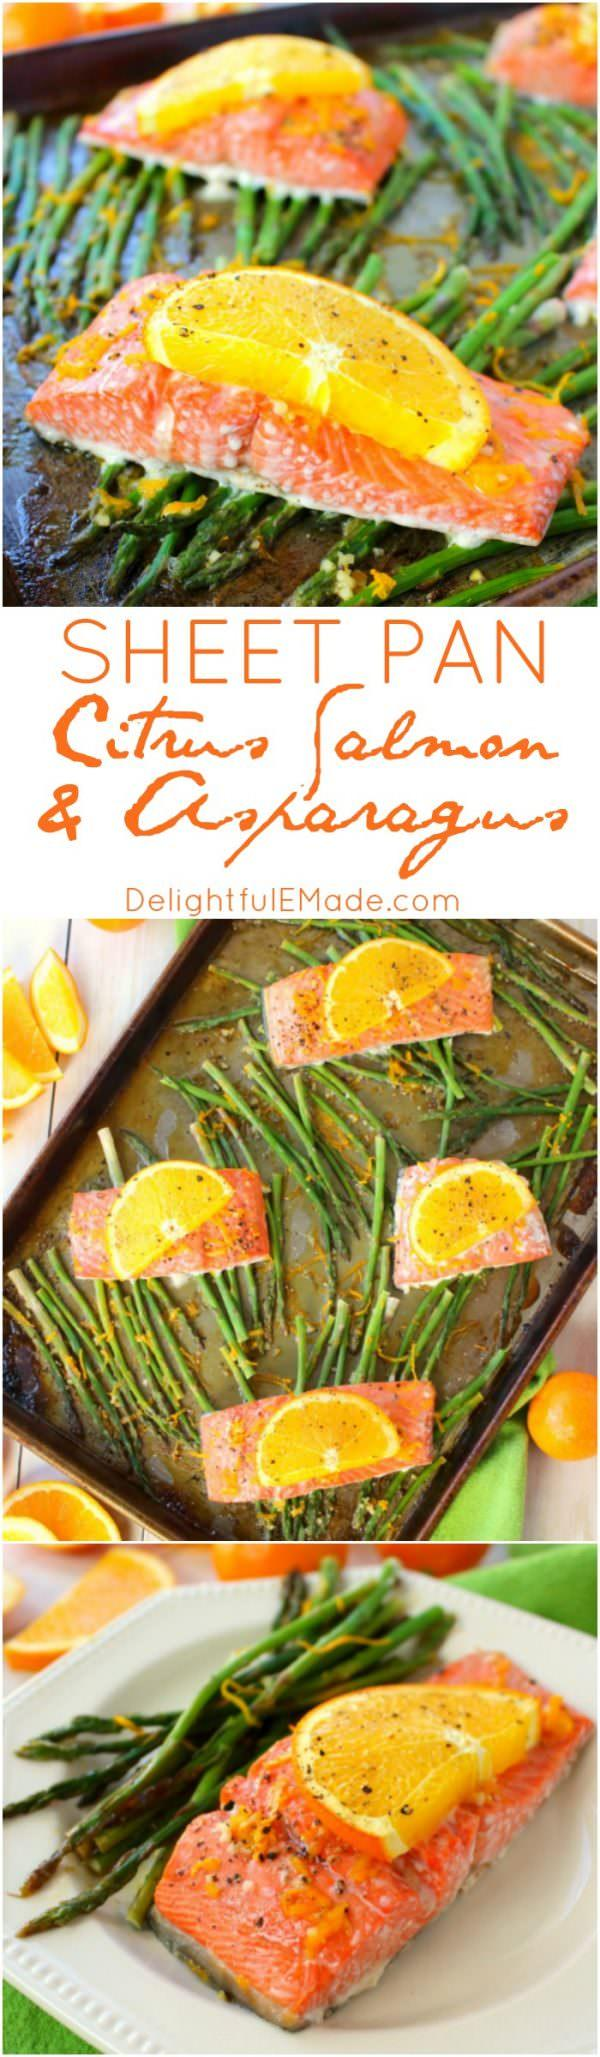 Favorite from this week's Linky Party: This Sheet Pan Citrus Salmon and Asparagus recipe has a delightful glaze of orange, lemon & lime. The salmon is roasted with the asparagus for easy cleanup!